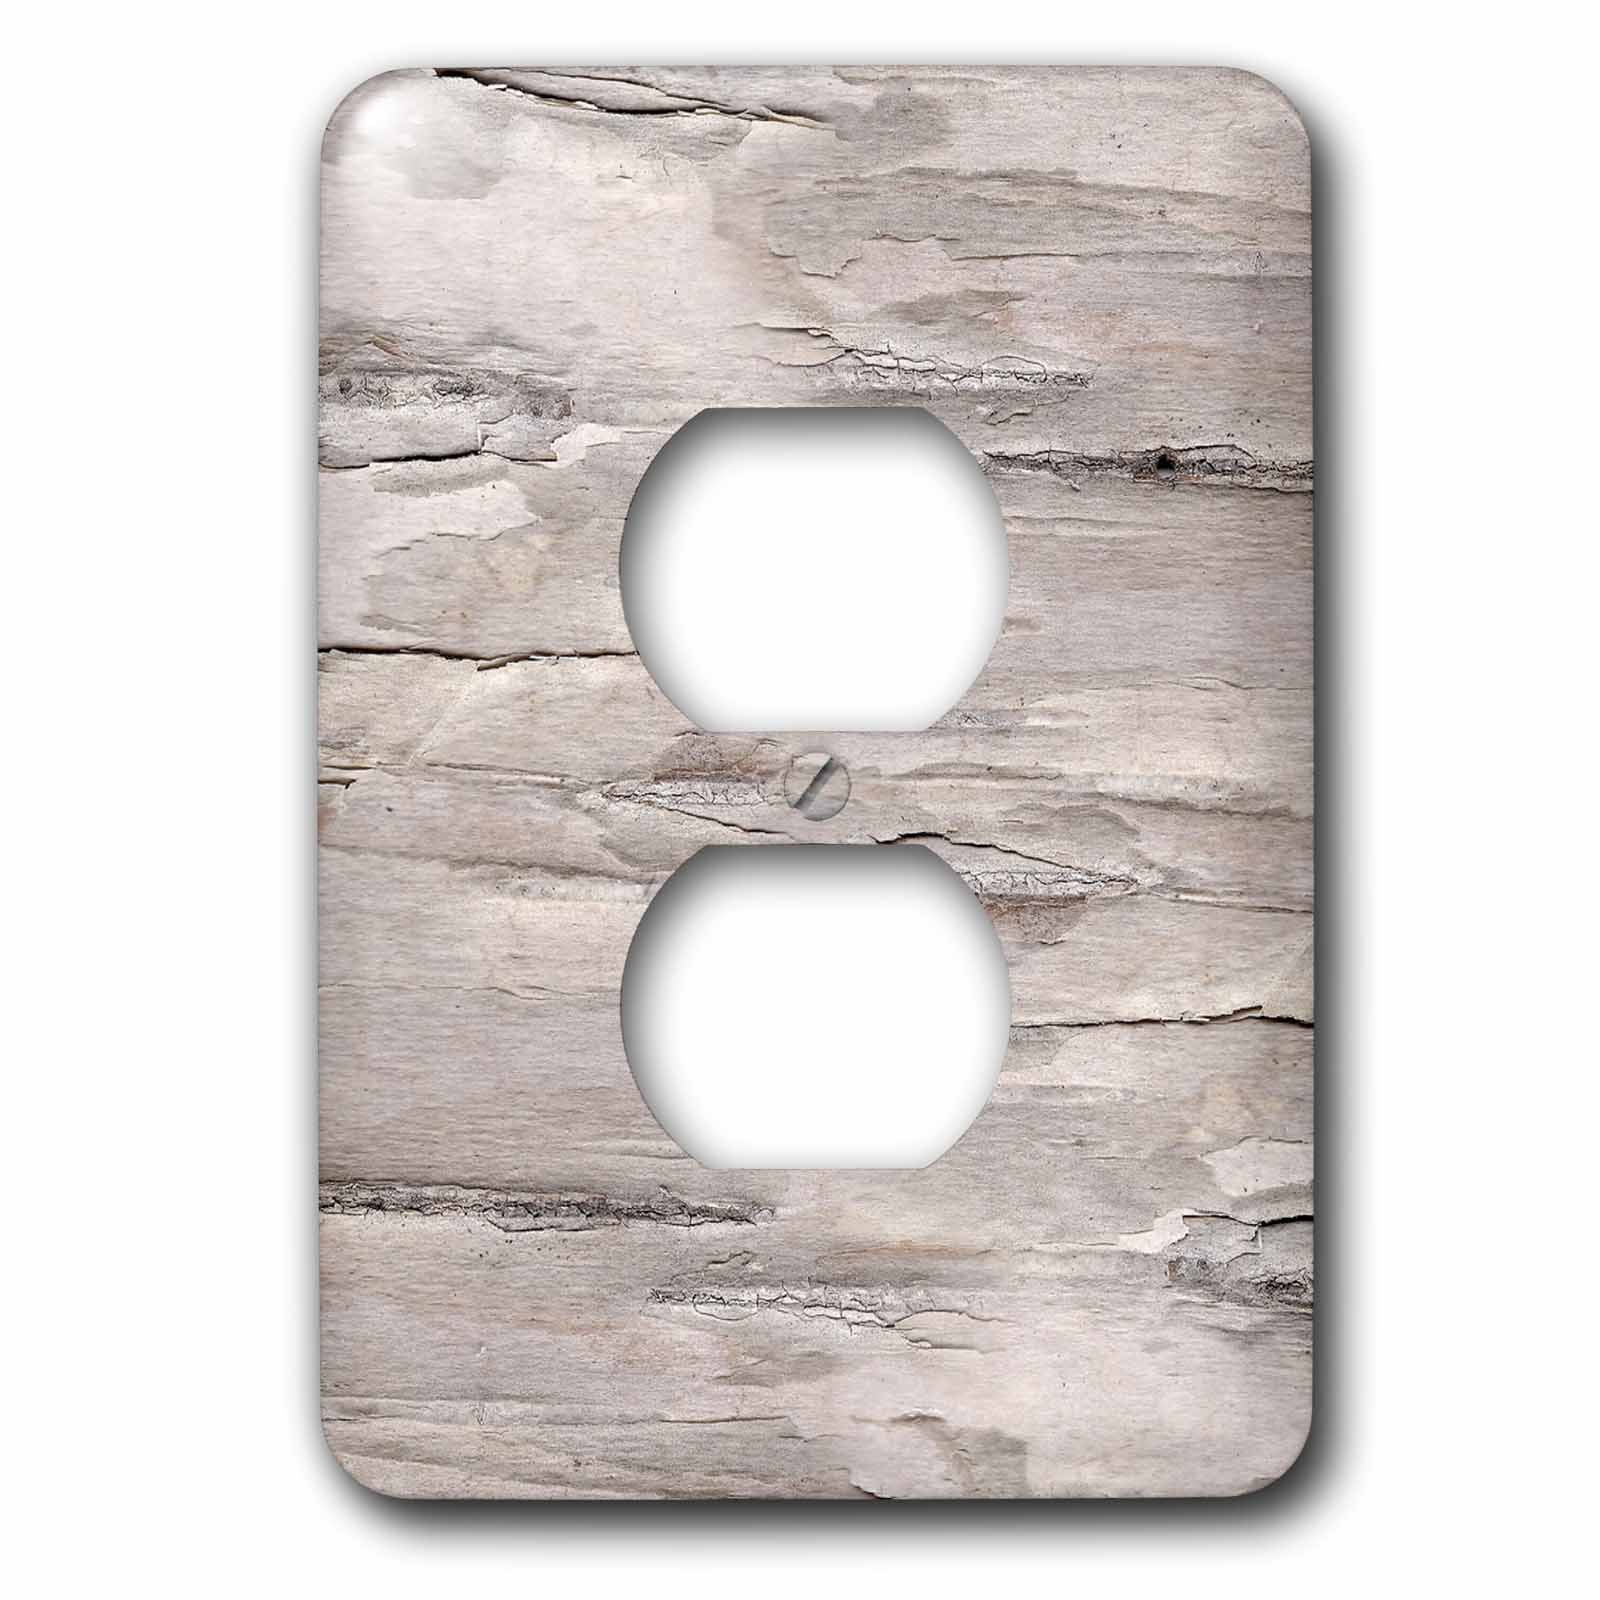 3dRose Anne Marie Baugh - Textures - White Distressed and Weathered Faux Printed Birch Wood Effect - Light Switch Covers - 2 plug outlet cover (lsp_283339_6)